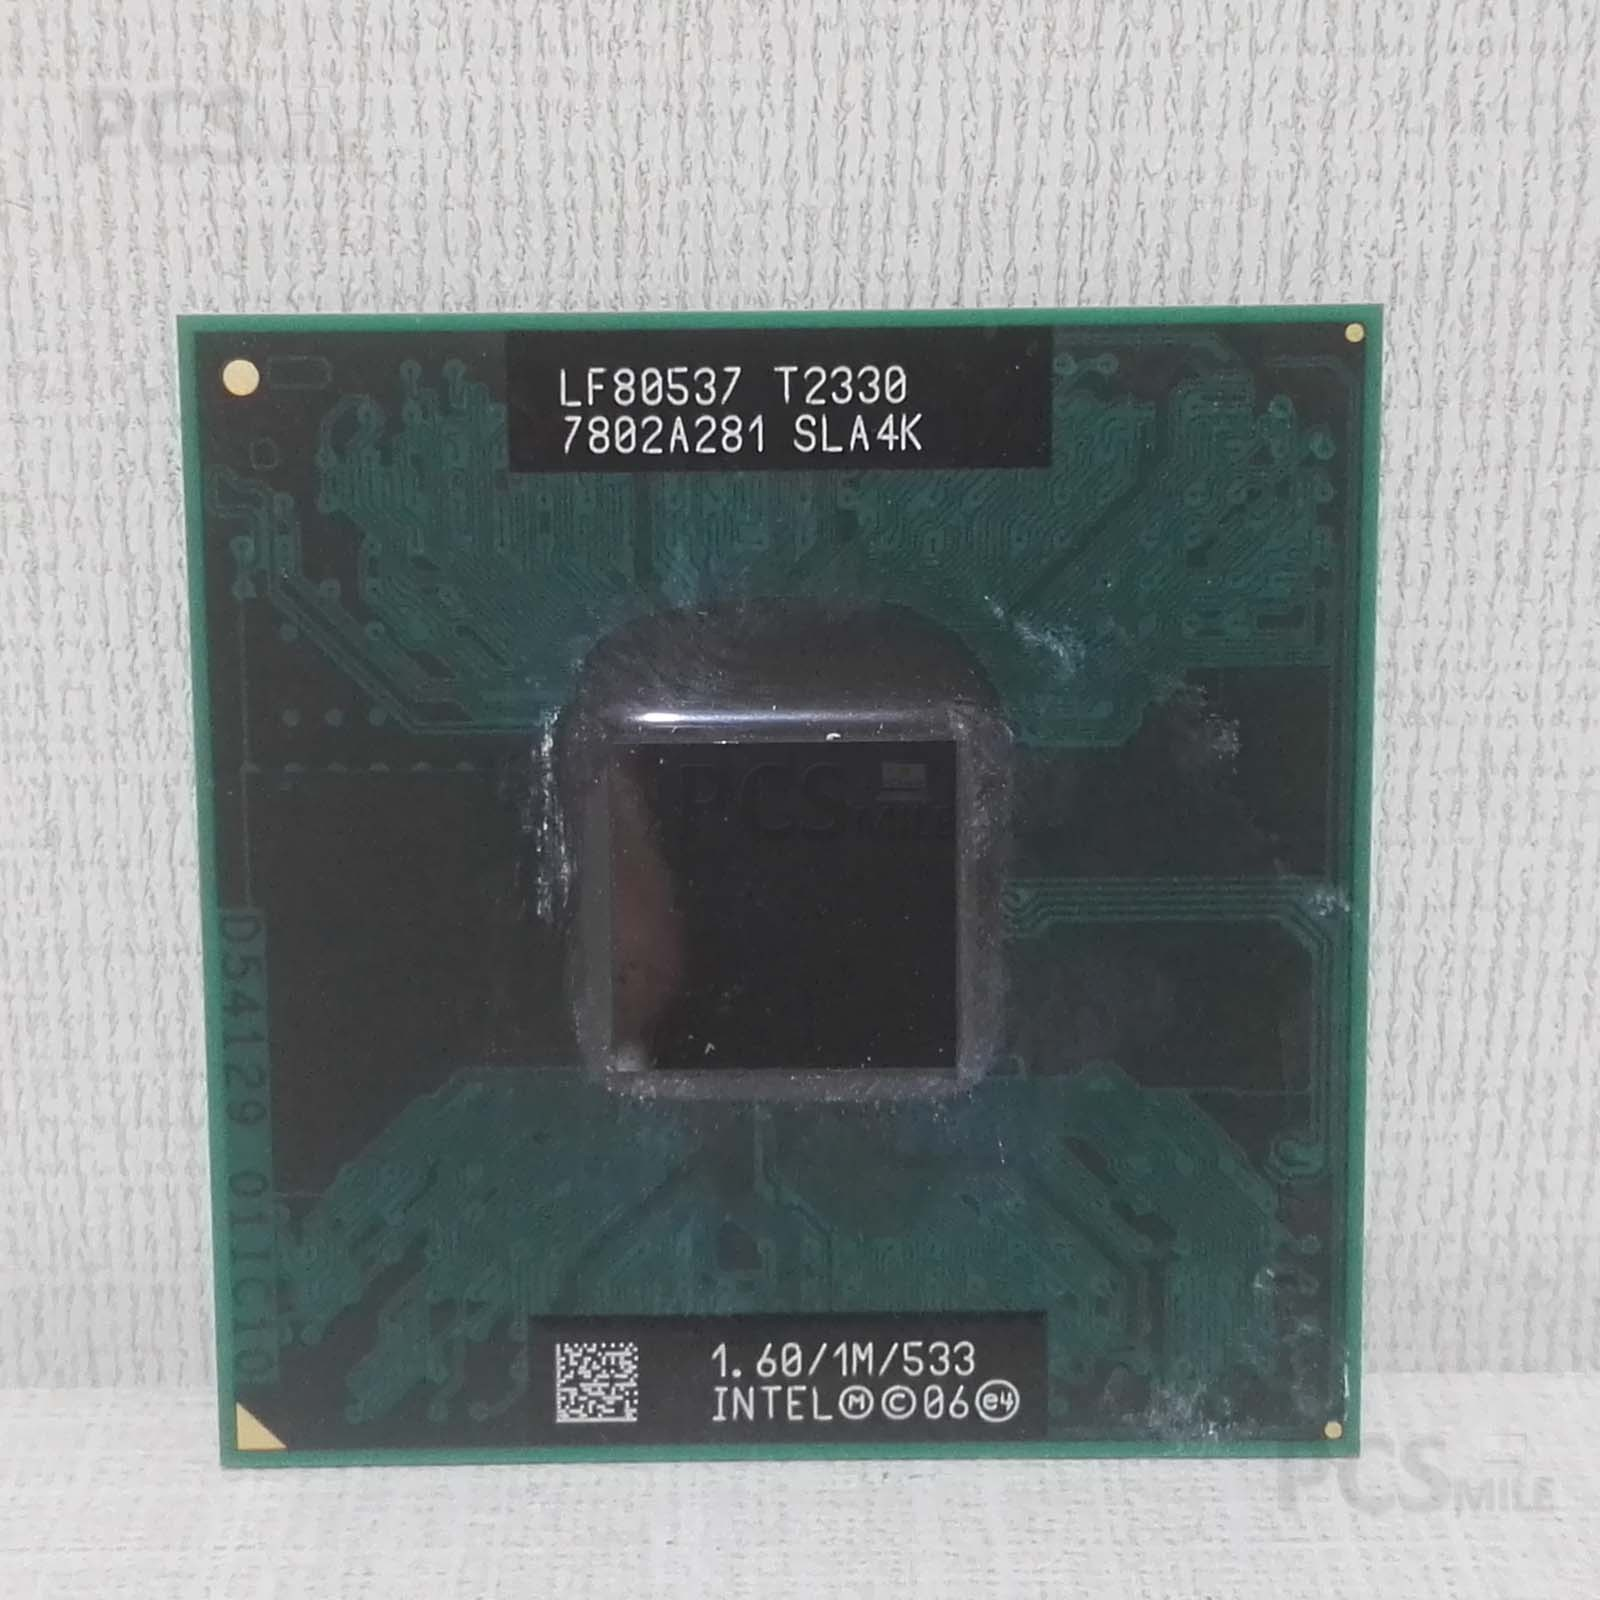 CPU Processore Intel Core 2 Duo LF80537 T2330 SLA4K 1,6/1M/533